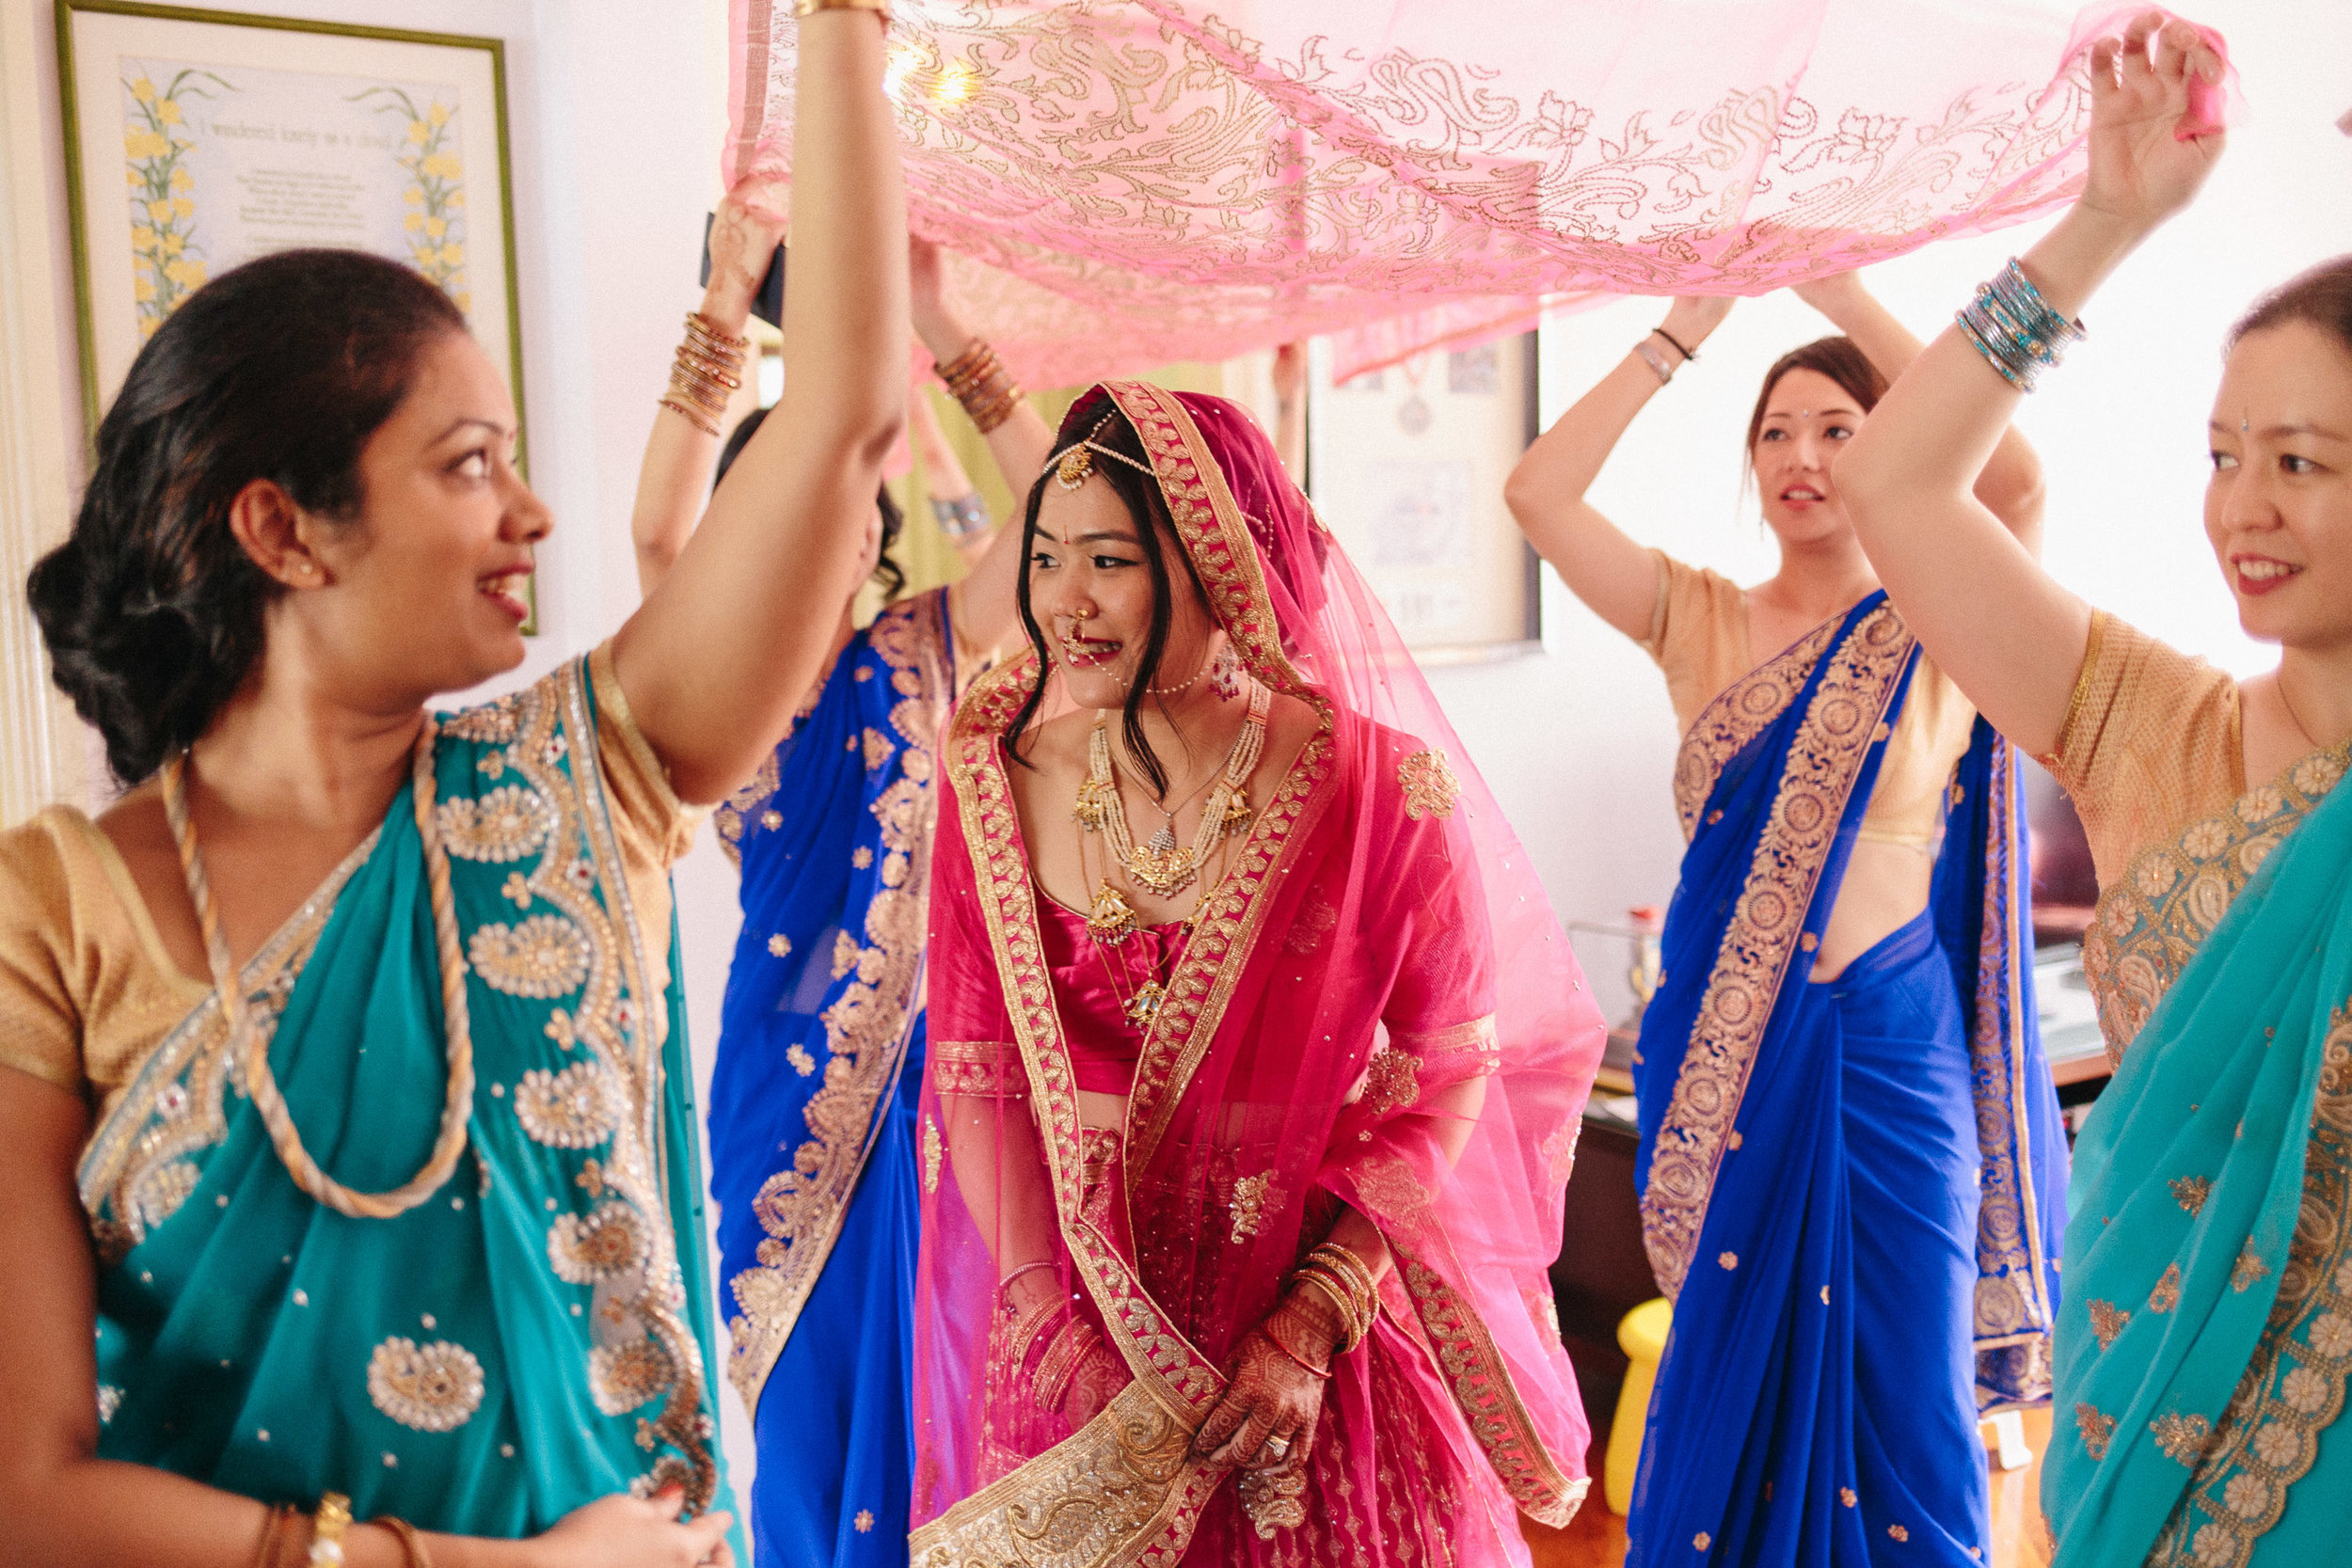 singapore-wedding-photographer-we-made-these-2016-selects-114.jpg